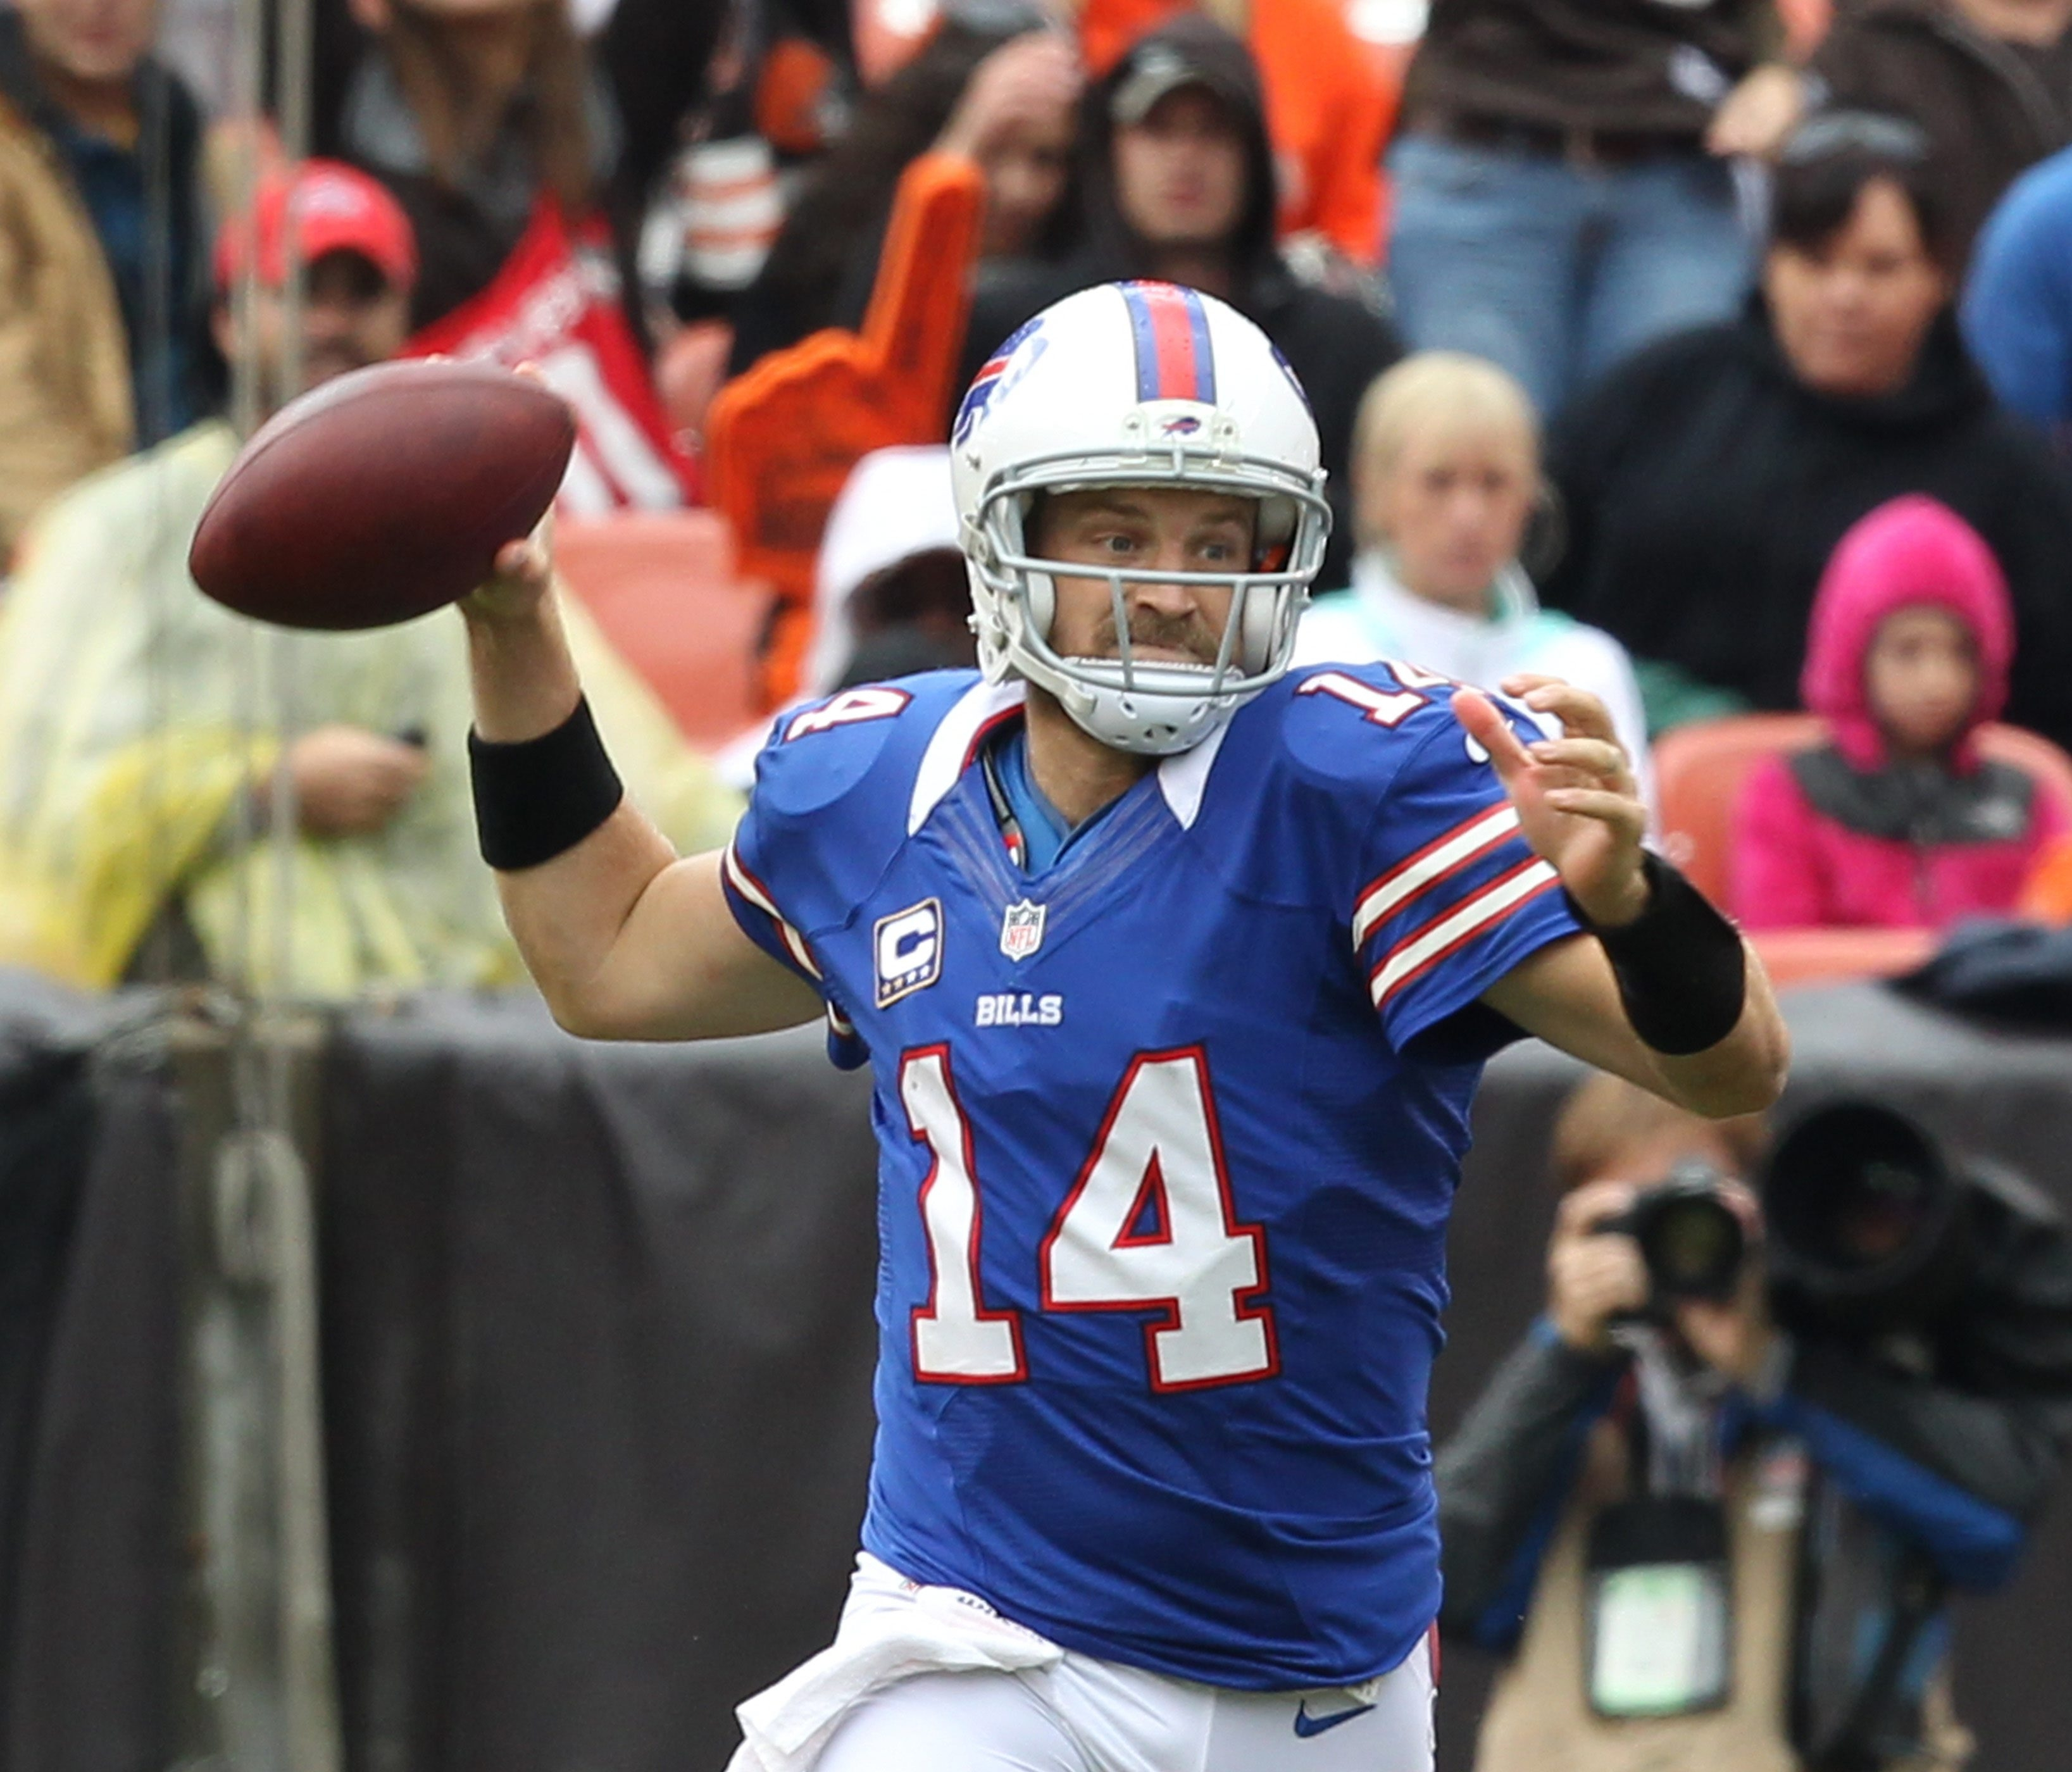 James P. McCoy / Buffalo News    Quarterback Ryan Fitzpatrick accounted for 90 yards on the Bills' first two drives.